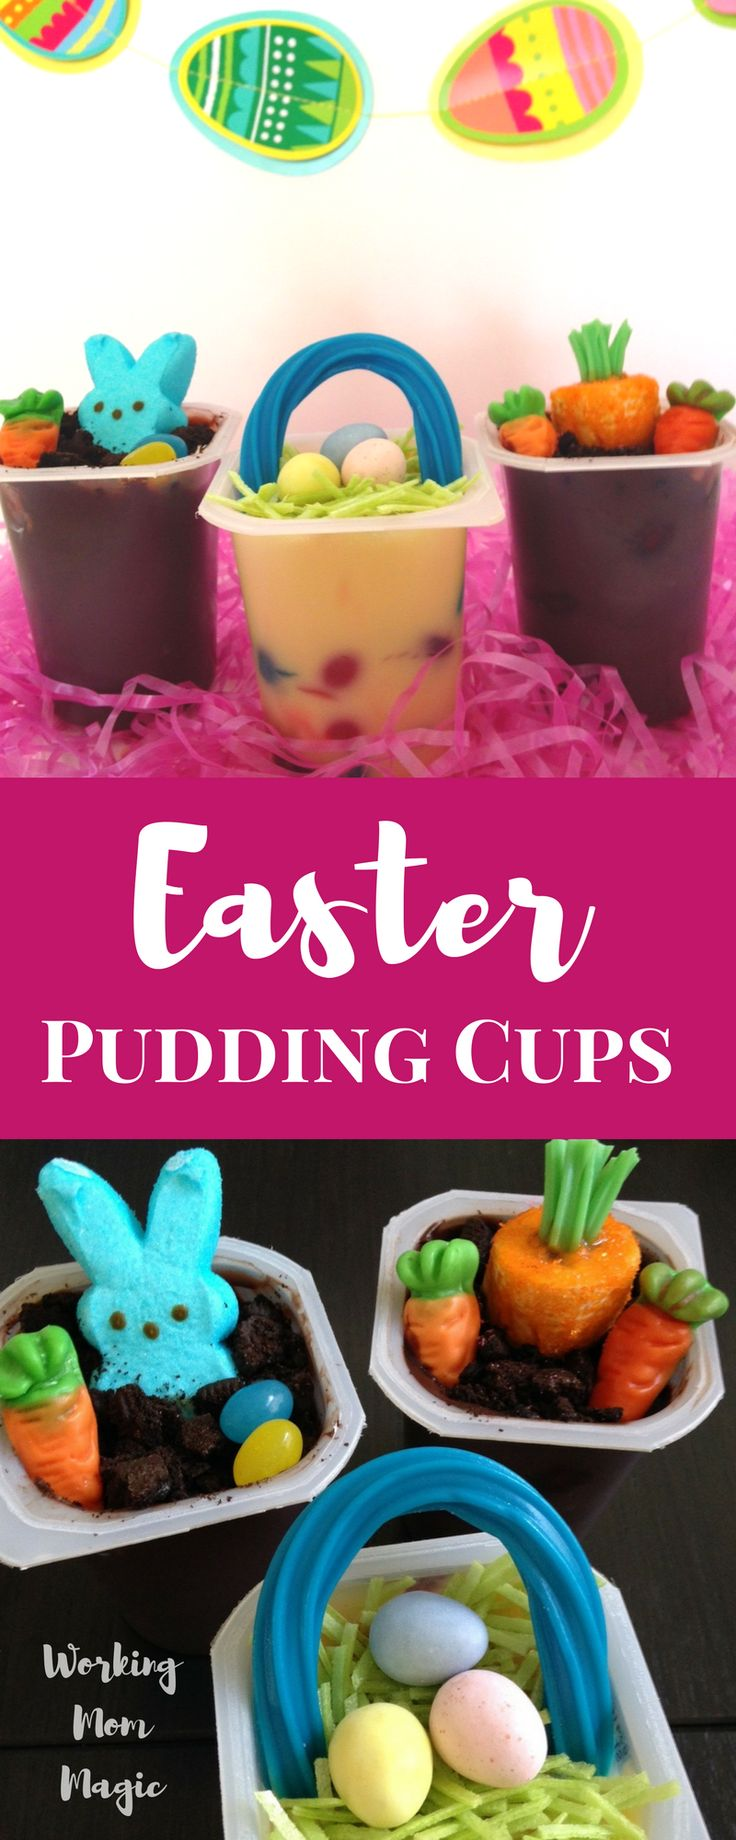 103 best easter gift ideas crafts etc images on pinterest easter pudding cups negle Images